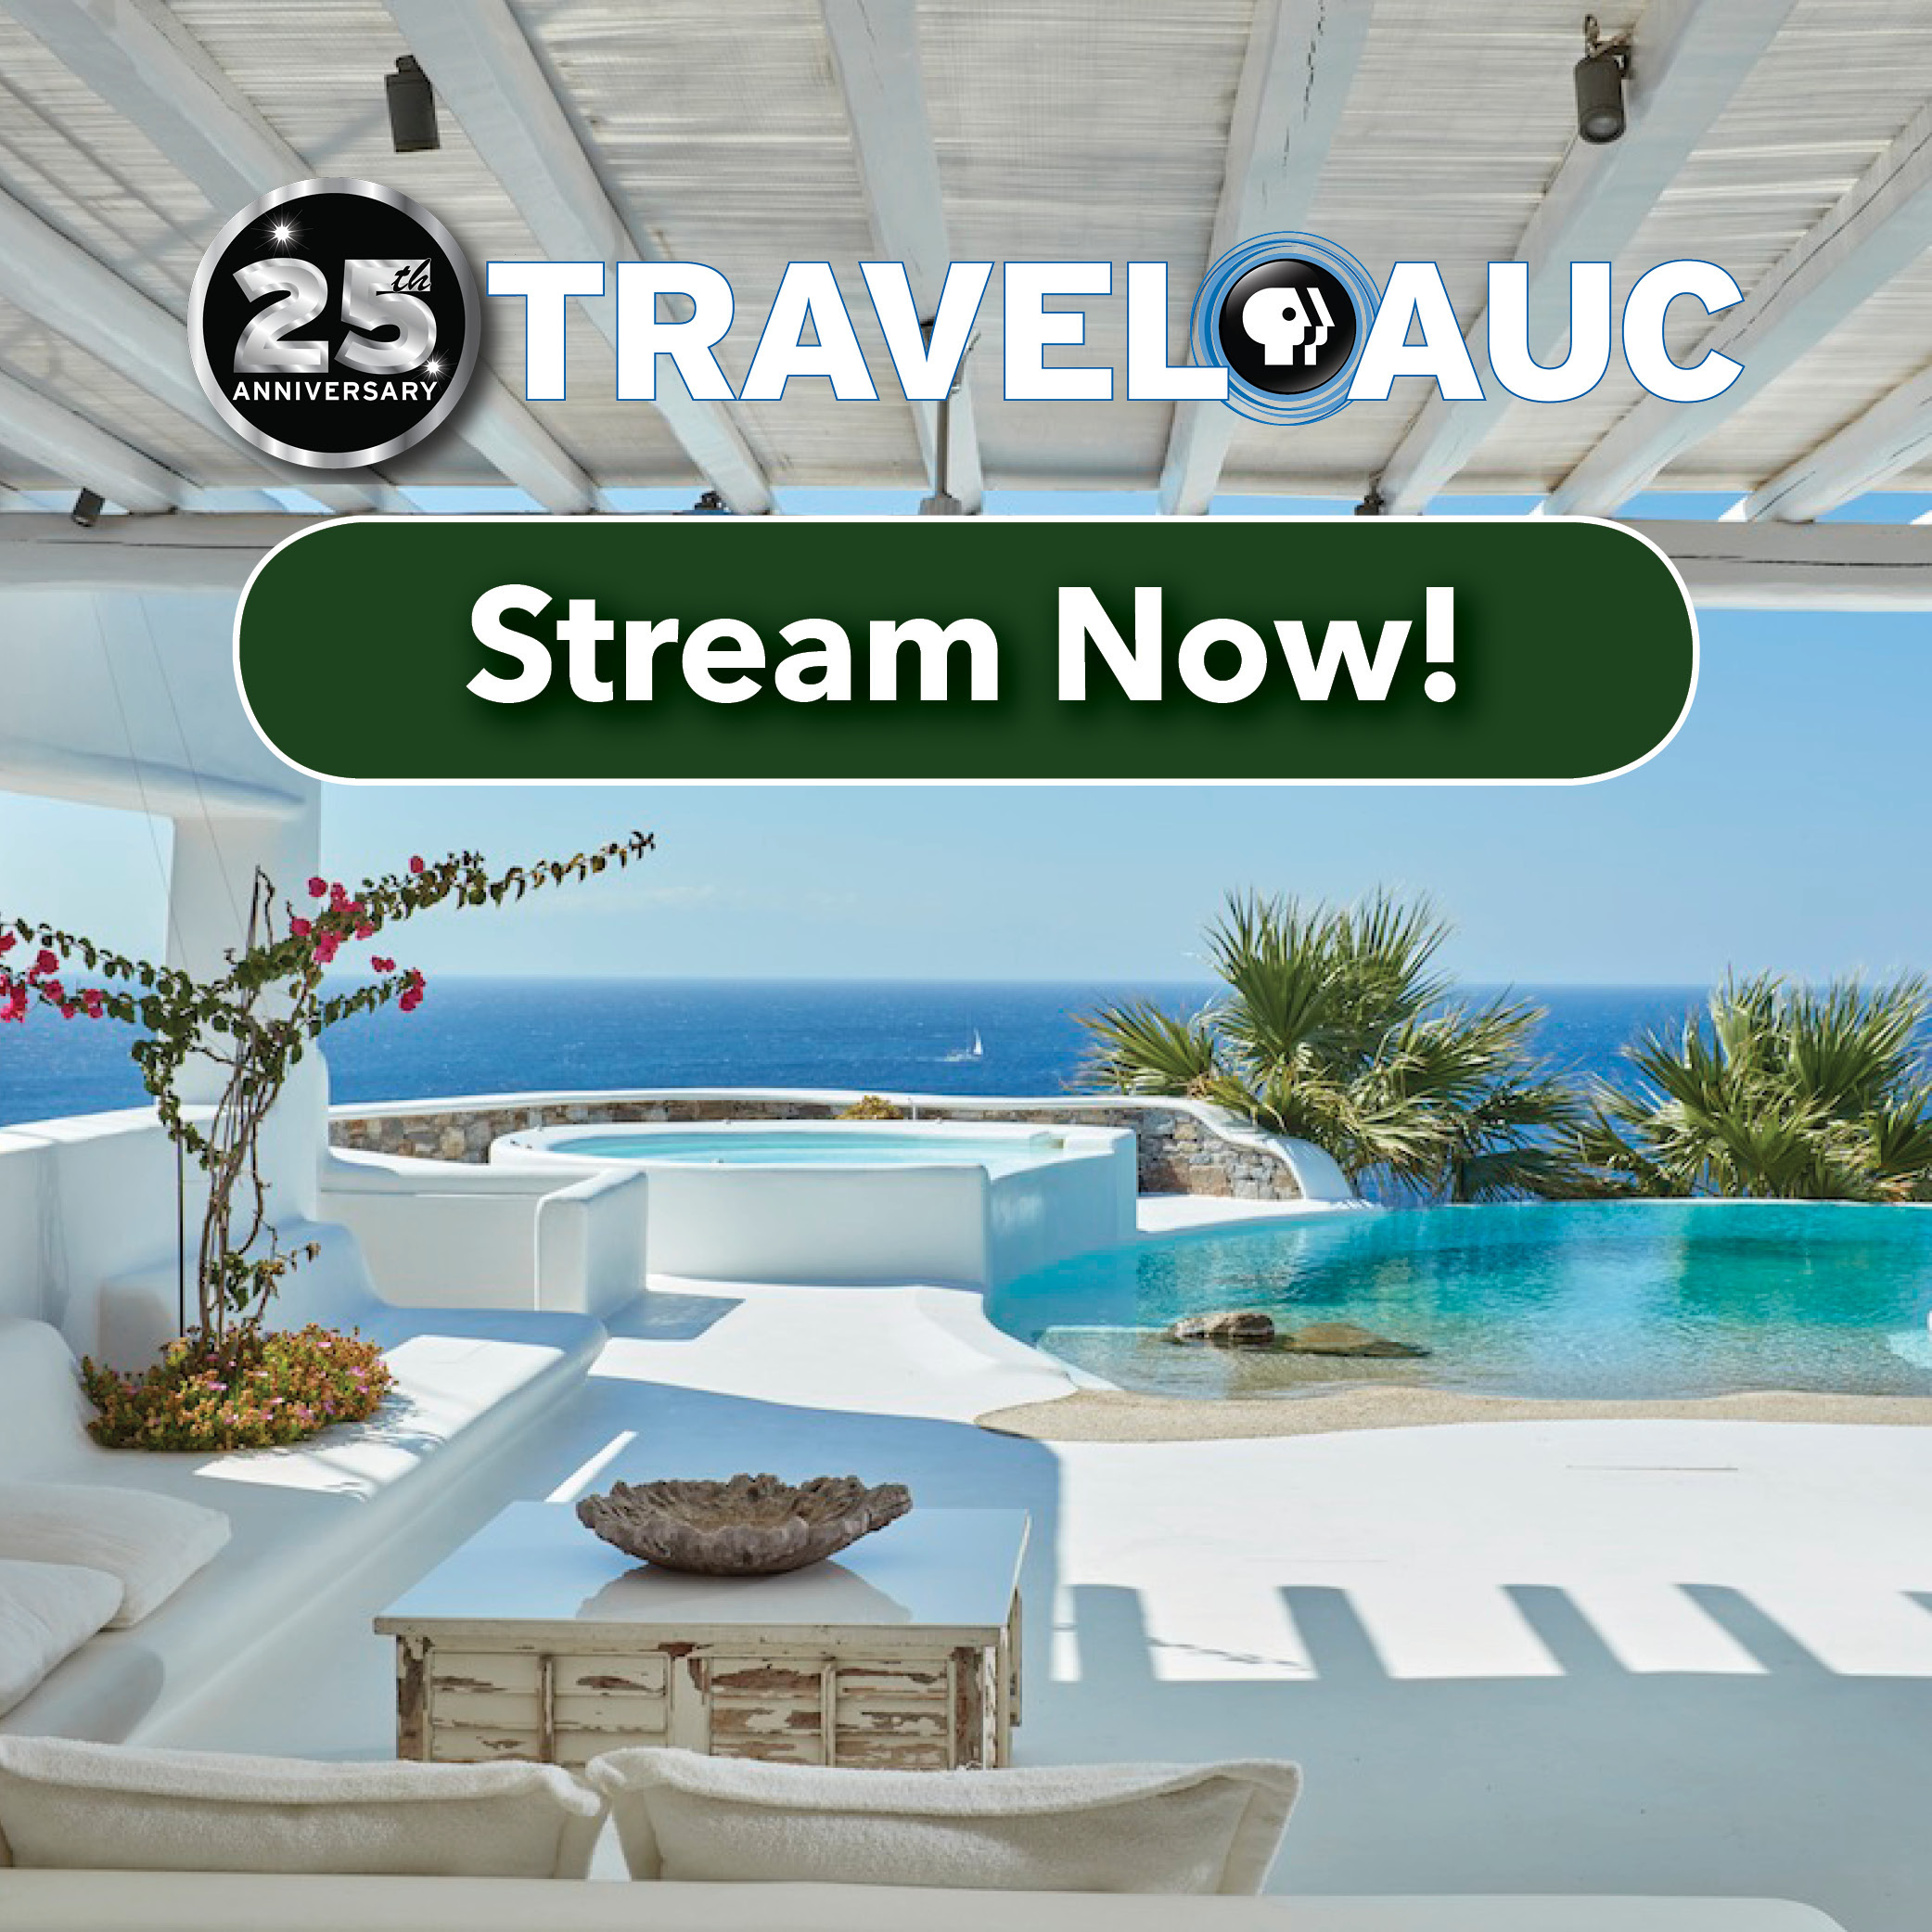 Travelauc Center Stream Now2